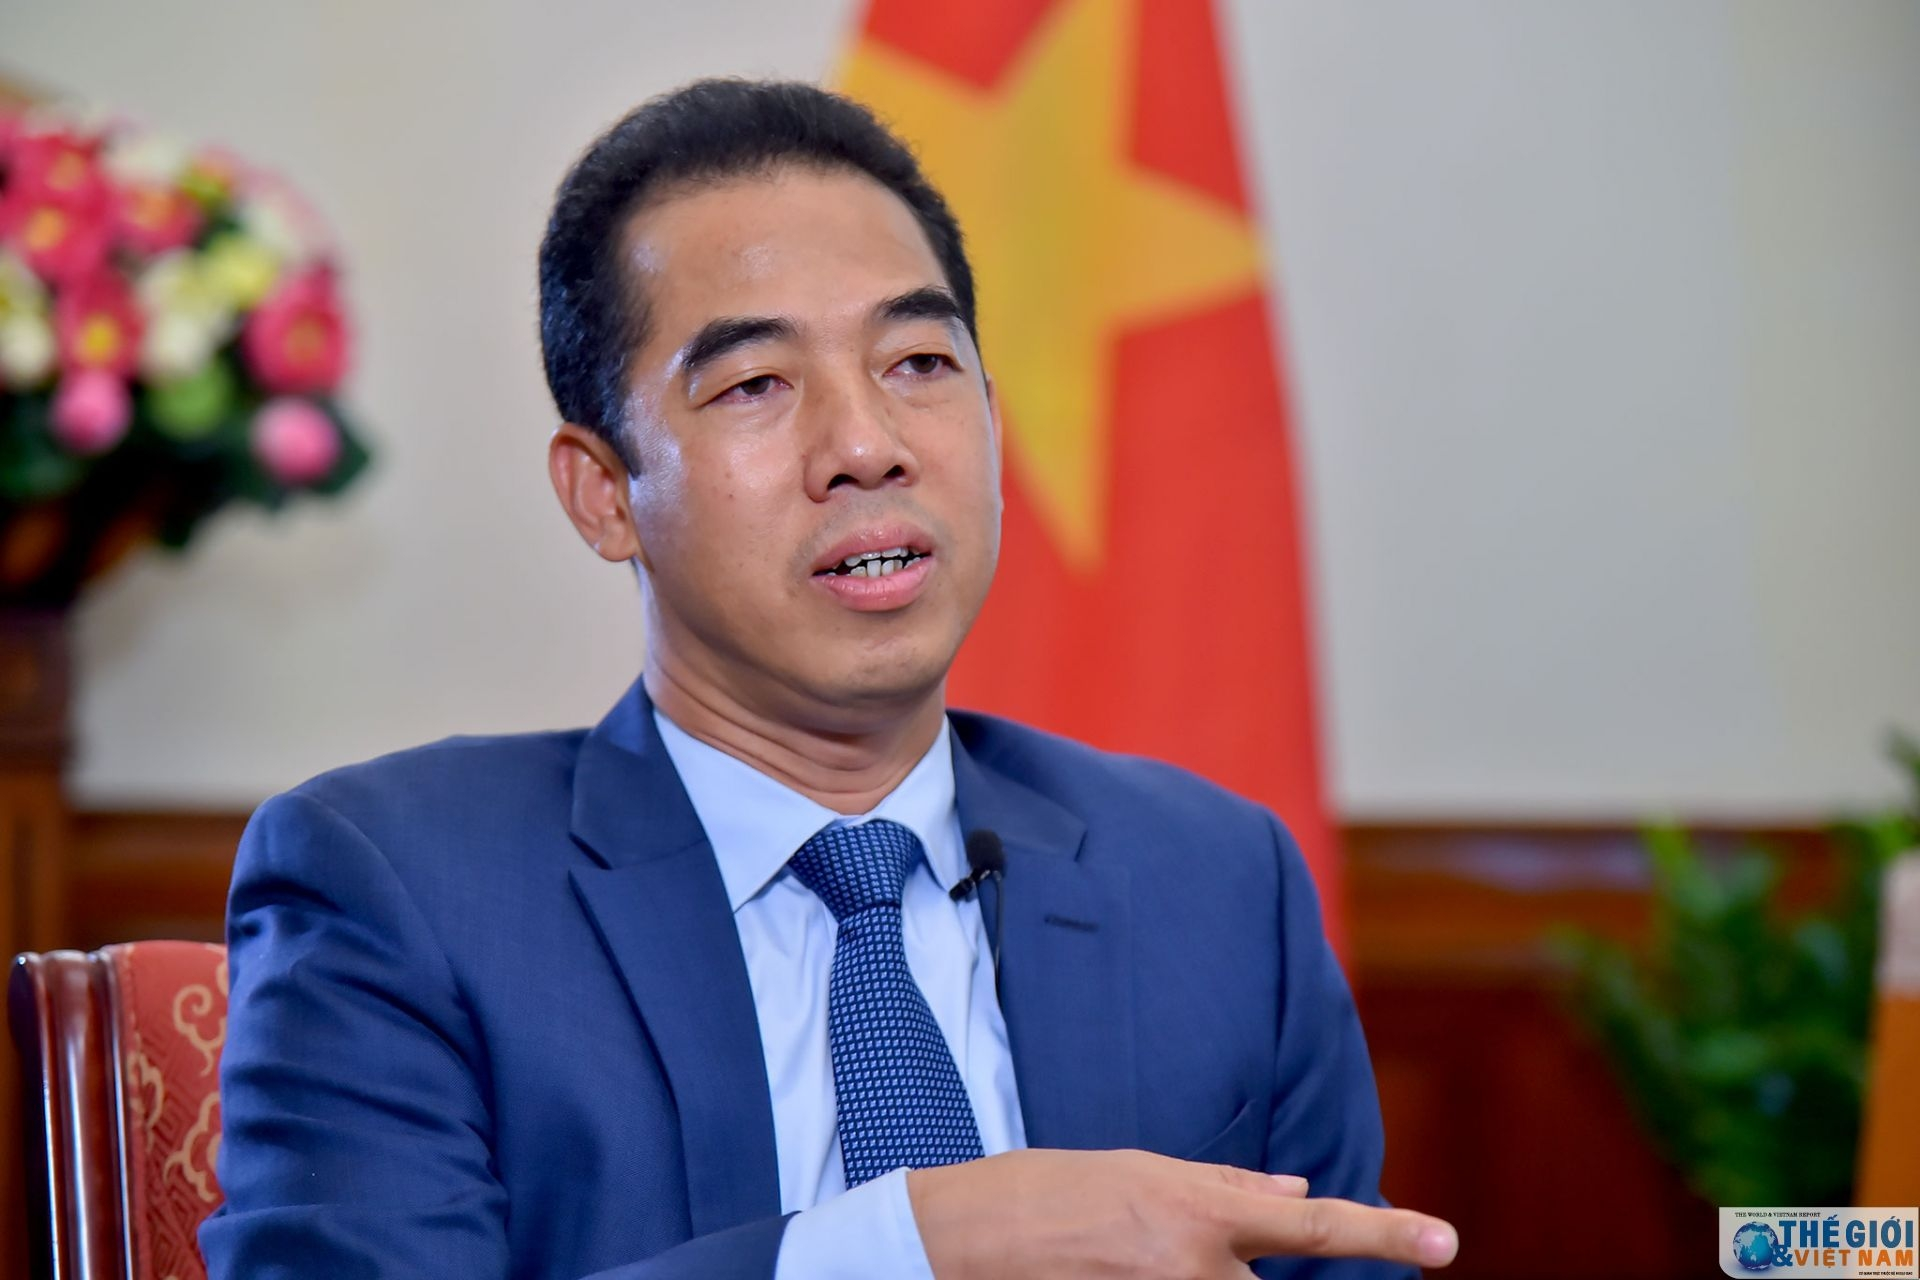 Deputy Foreign Minister To Anh Dung (Photo: The Gioi Vietnam)